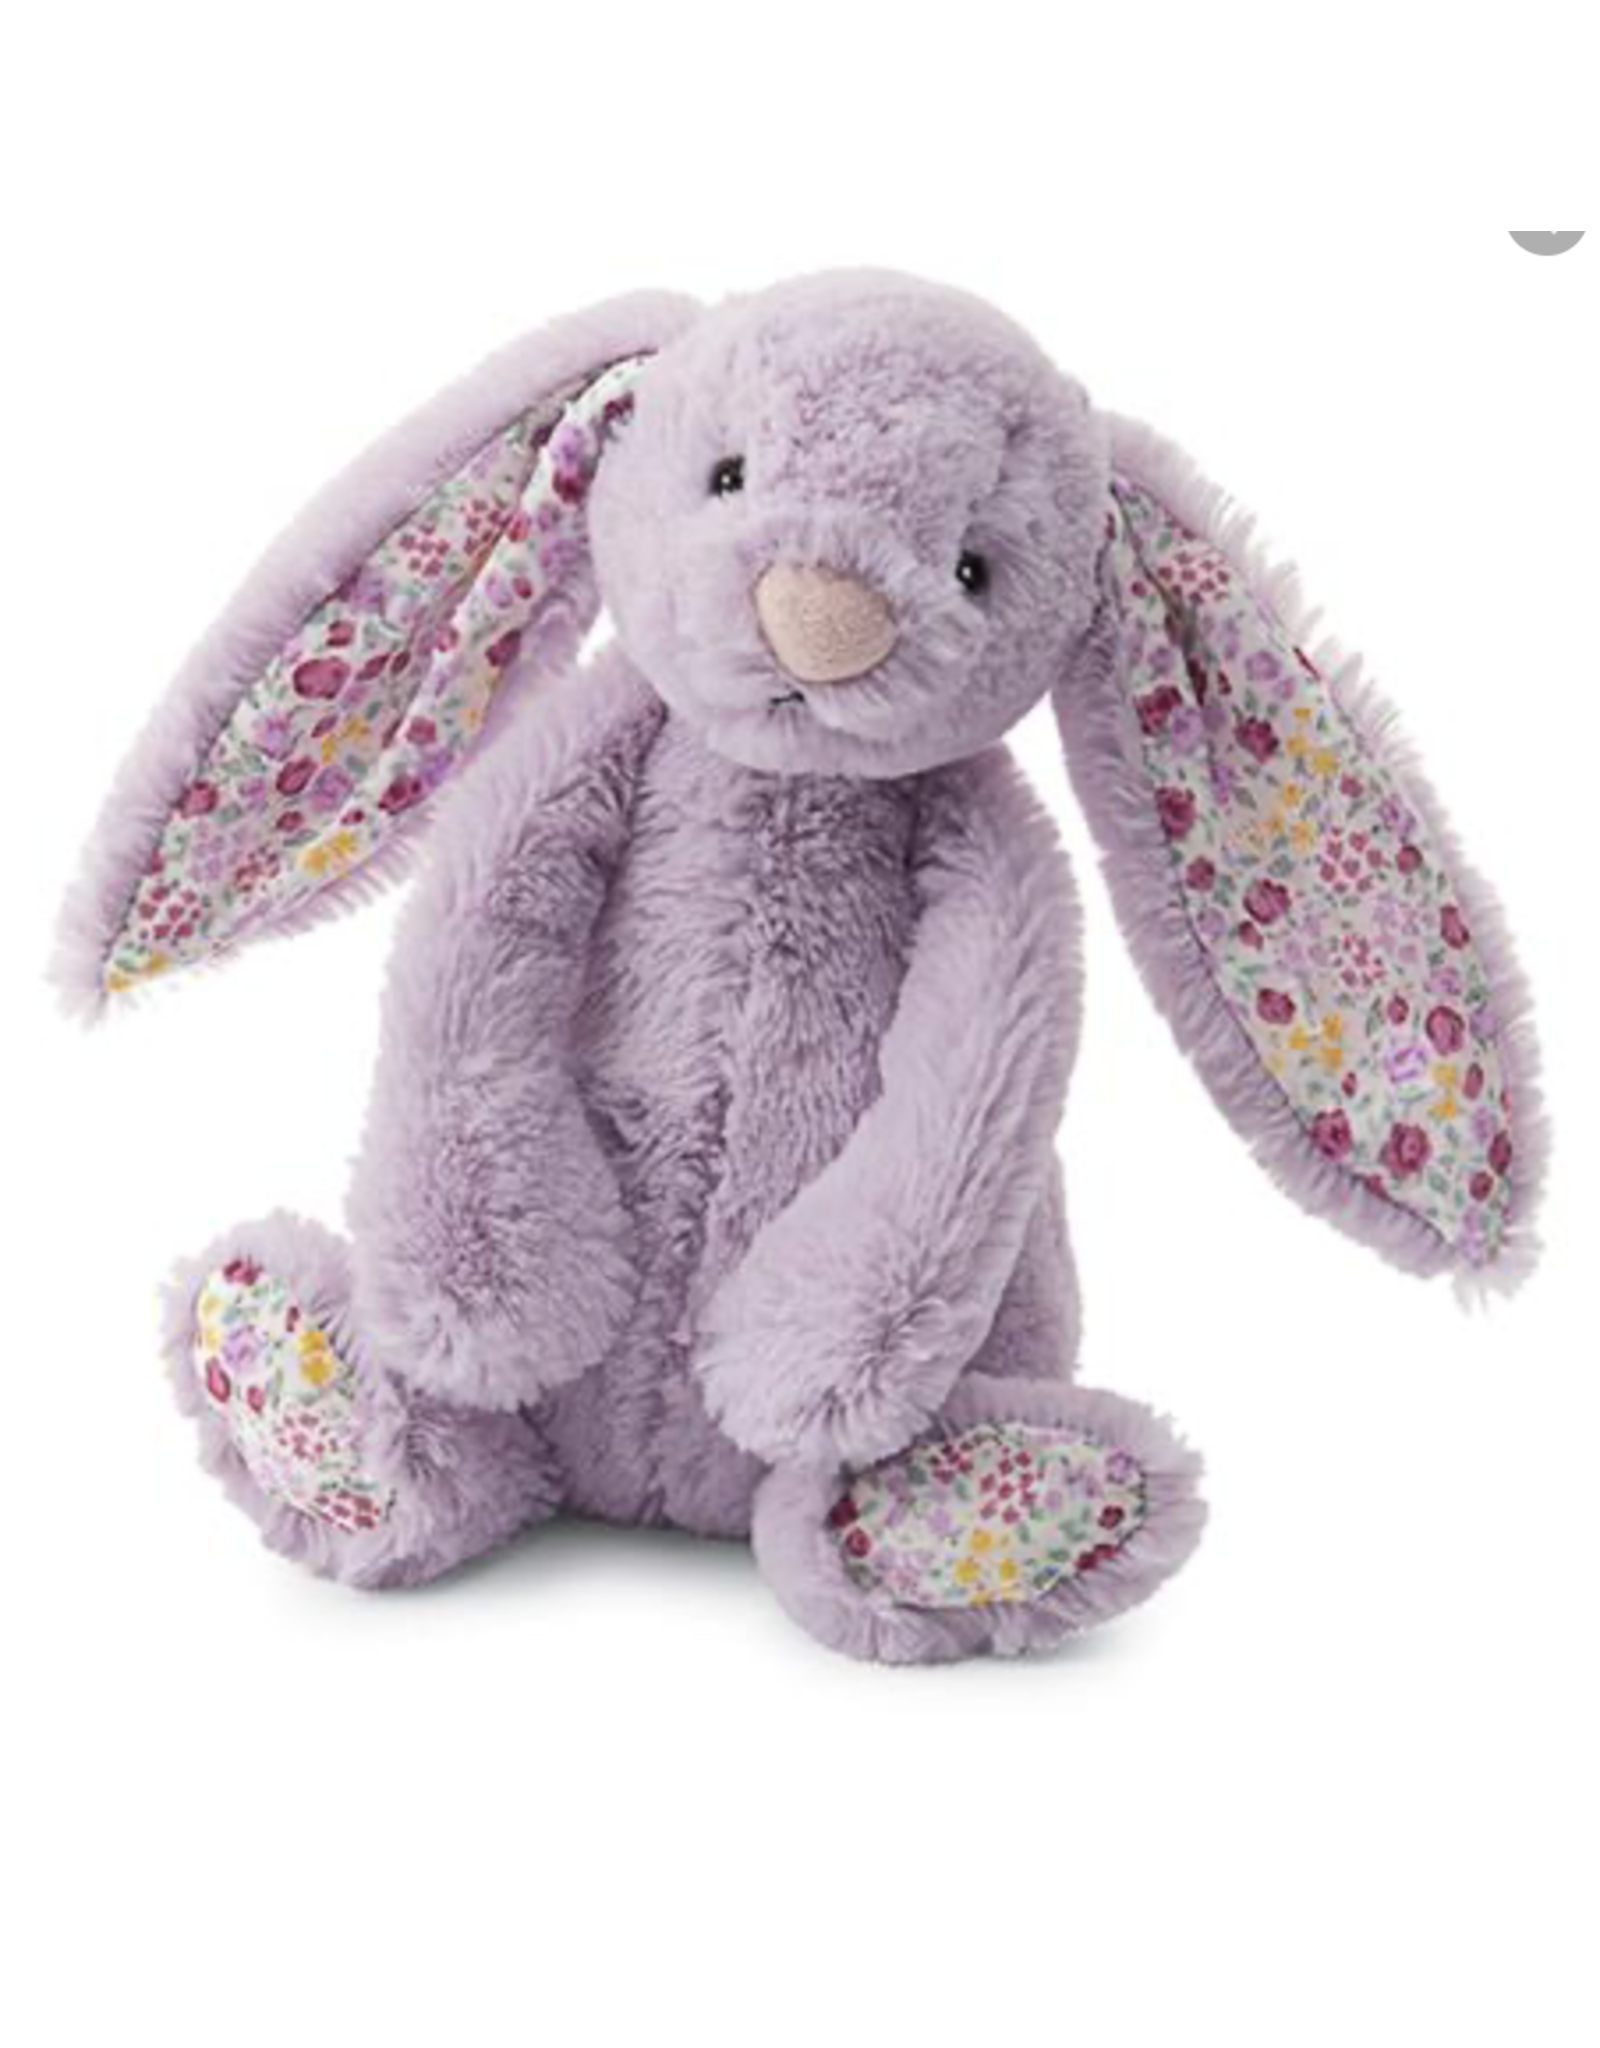 Jelly Cat Jellycat Medium Blossom Bunny